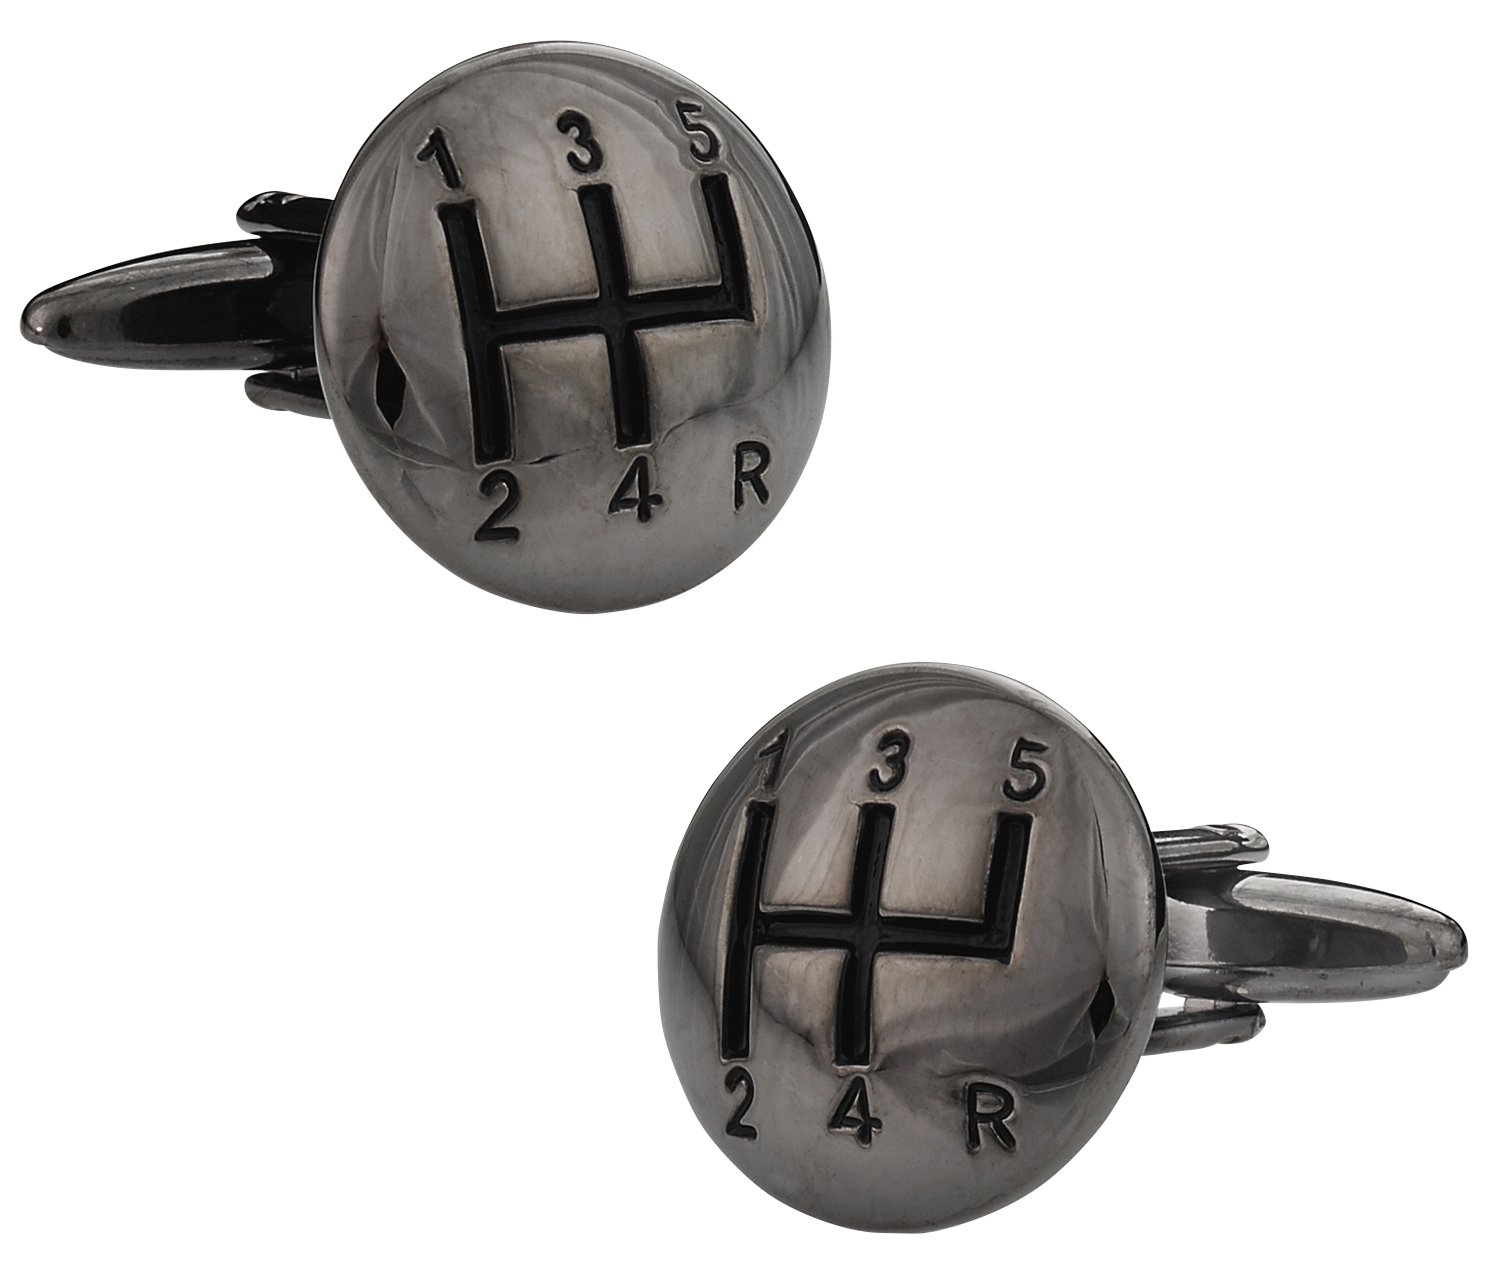 Cuff-Daddy Stick Shift Automotive Car Cufflinks in Gunmetal Tone with Presentation Box